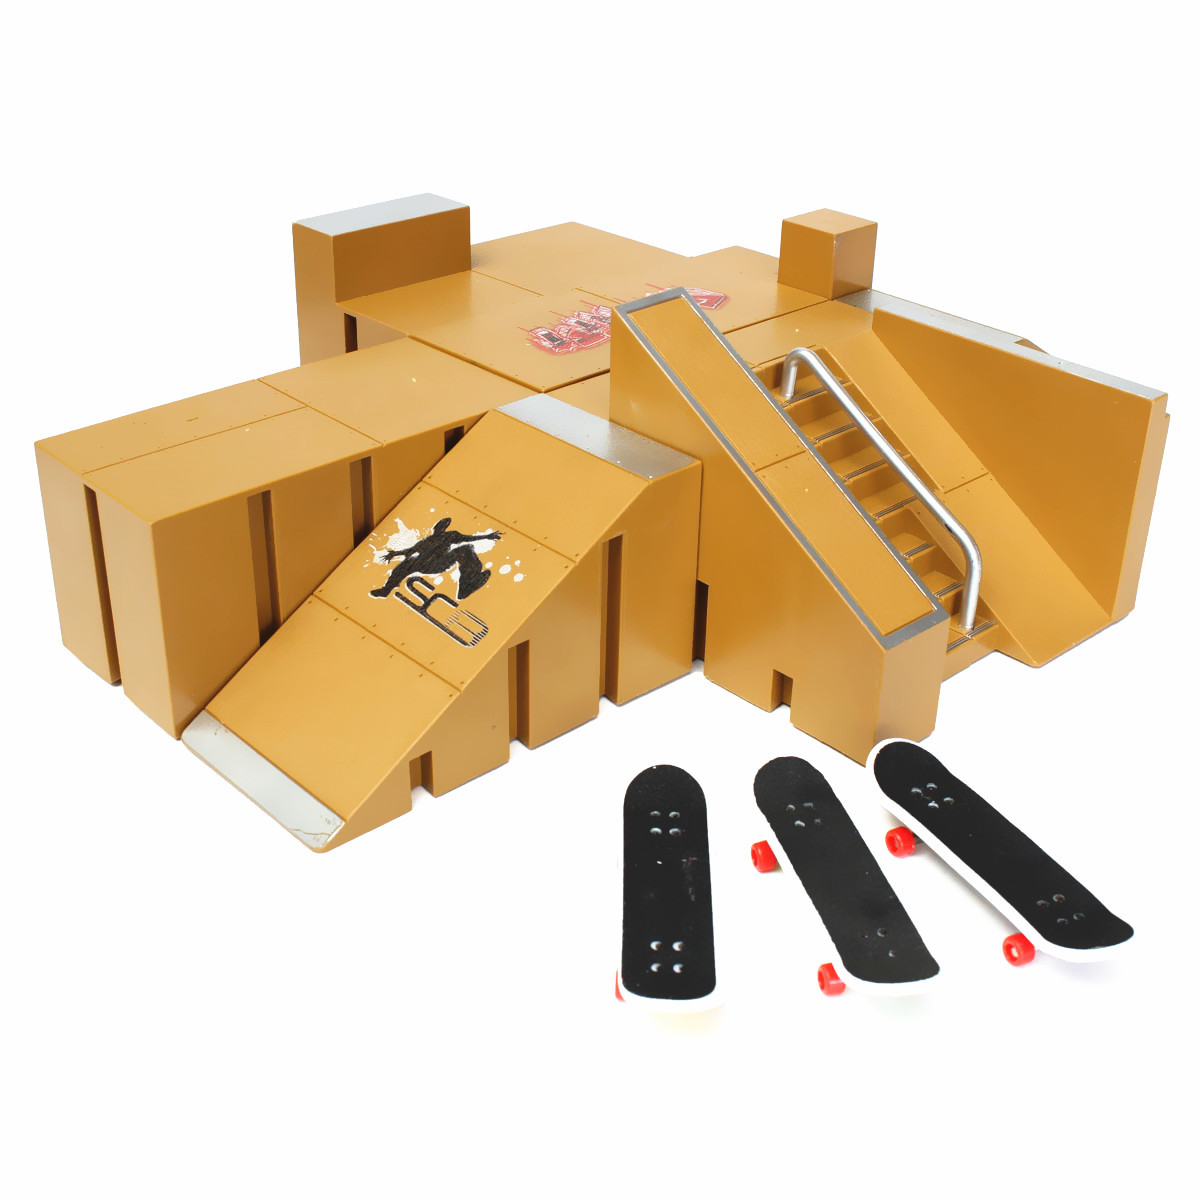 Online get cheap tech deck aliexpress alibaba group new 3x fingerboard finger board skate ramp table set professional platform ultimate parks 92a wbox for tech deck boarding toy baanklon Image collections